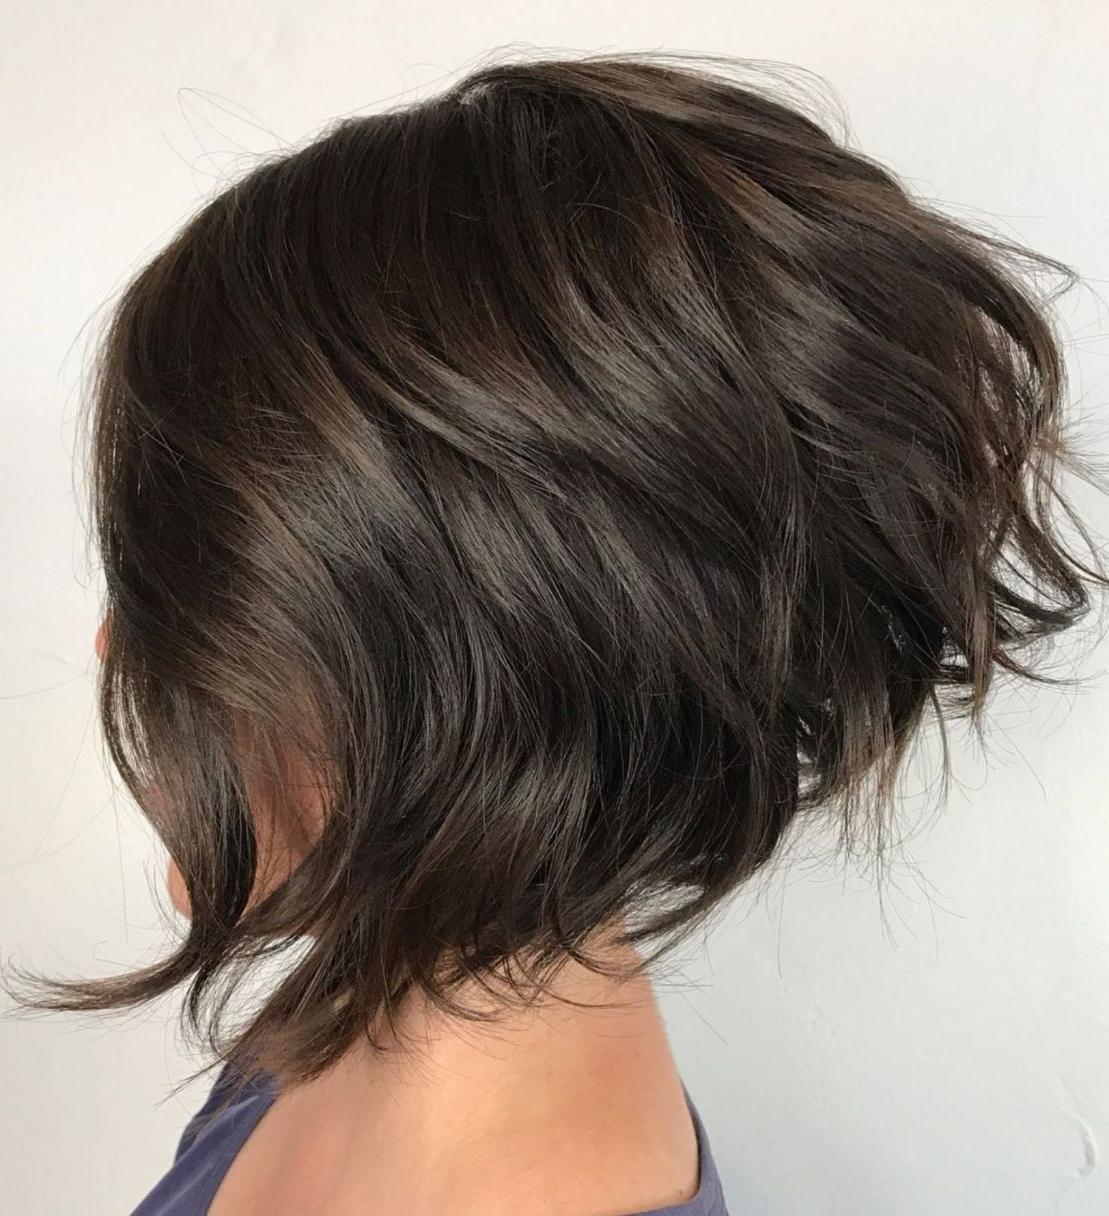 60 Best Short Bob Haircuts And Hairstyles For Women | Hair Throughout Angled Burgundy Bob Hairstyles With Voluminous Layers (View 10 of 20)